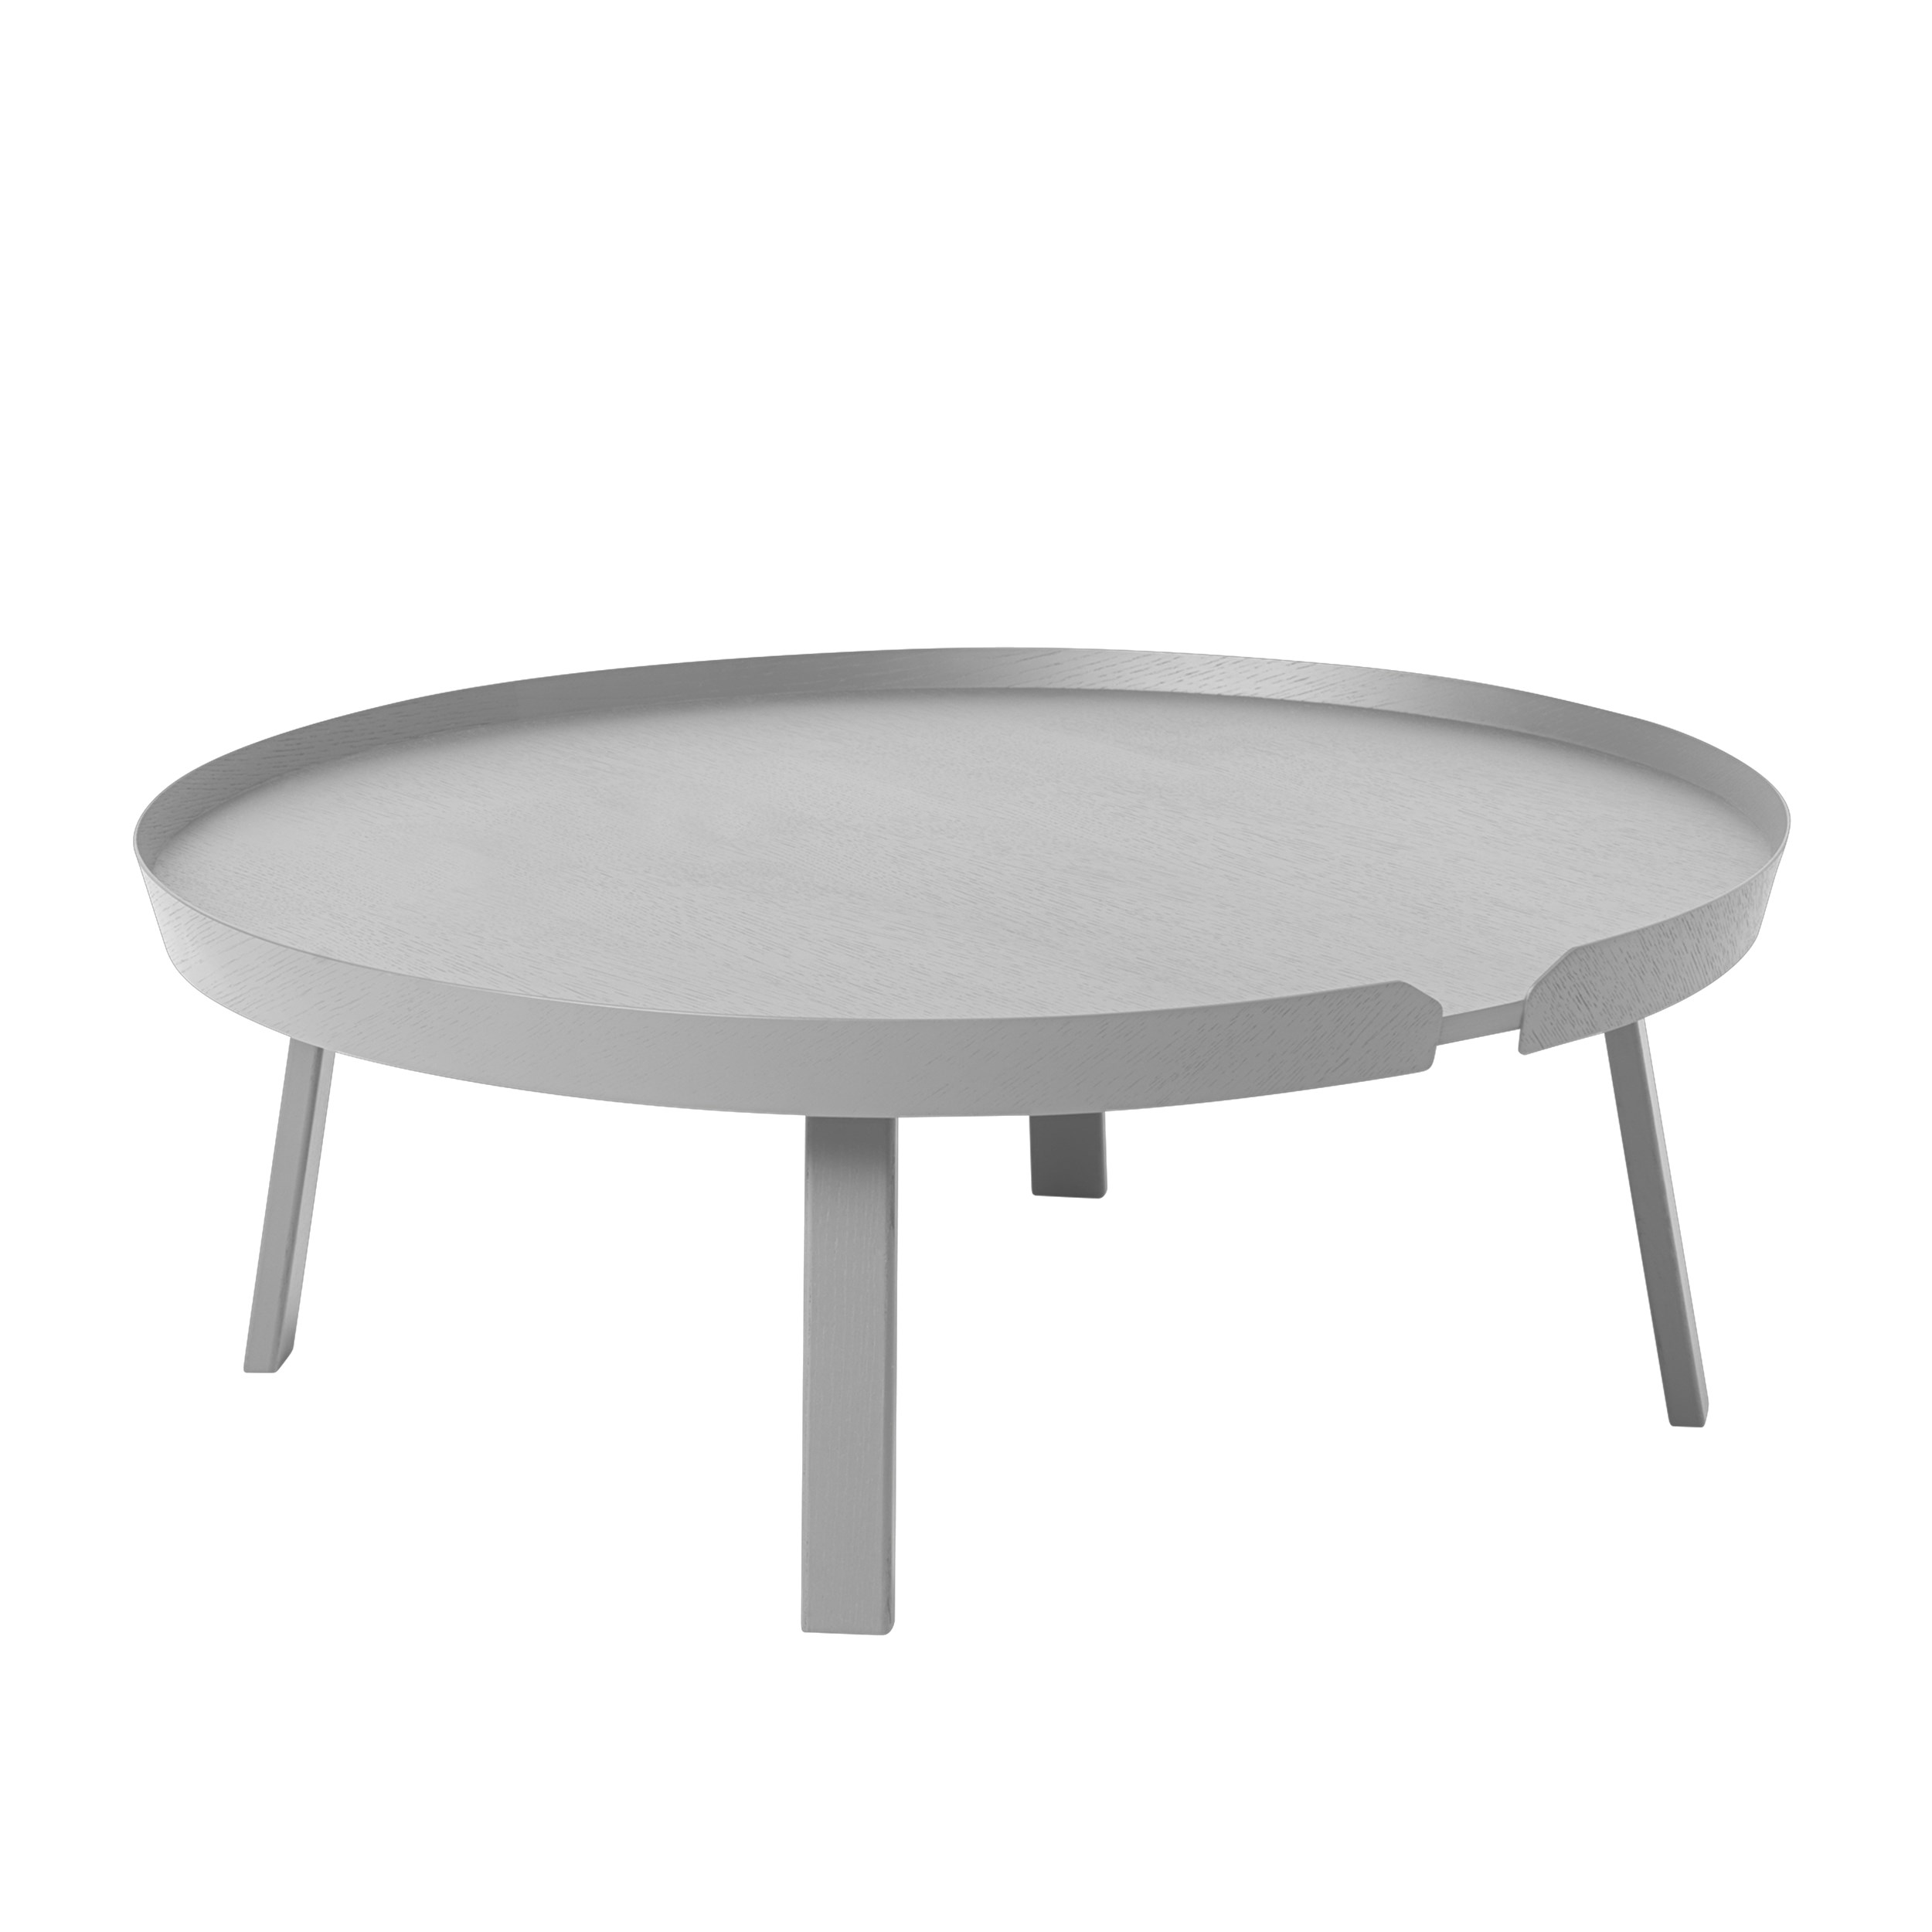 Around coffee table extra large grey